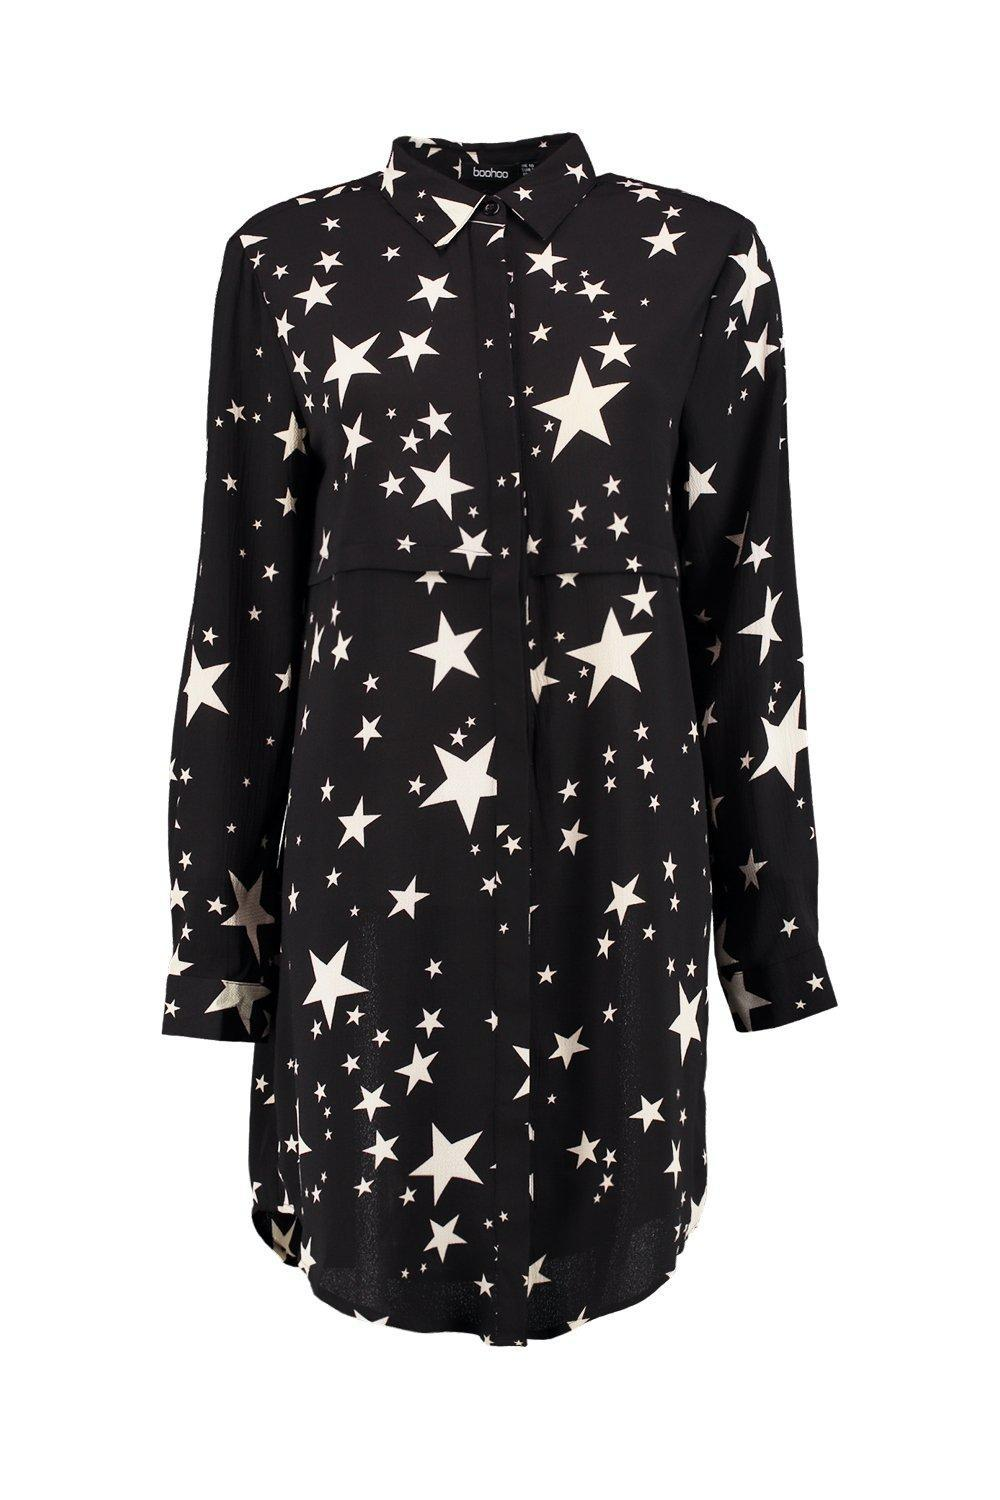 3e214894b2 Boohoo Bowie Star Print Shirt Dress in Black - Lyst